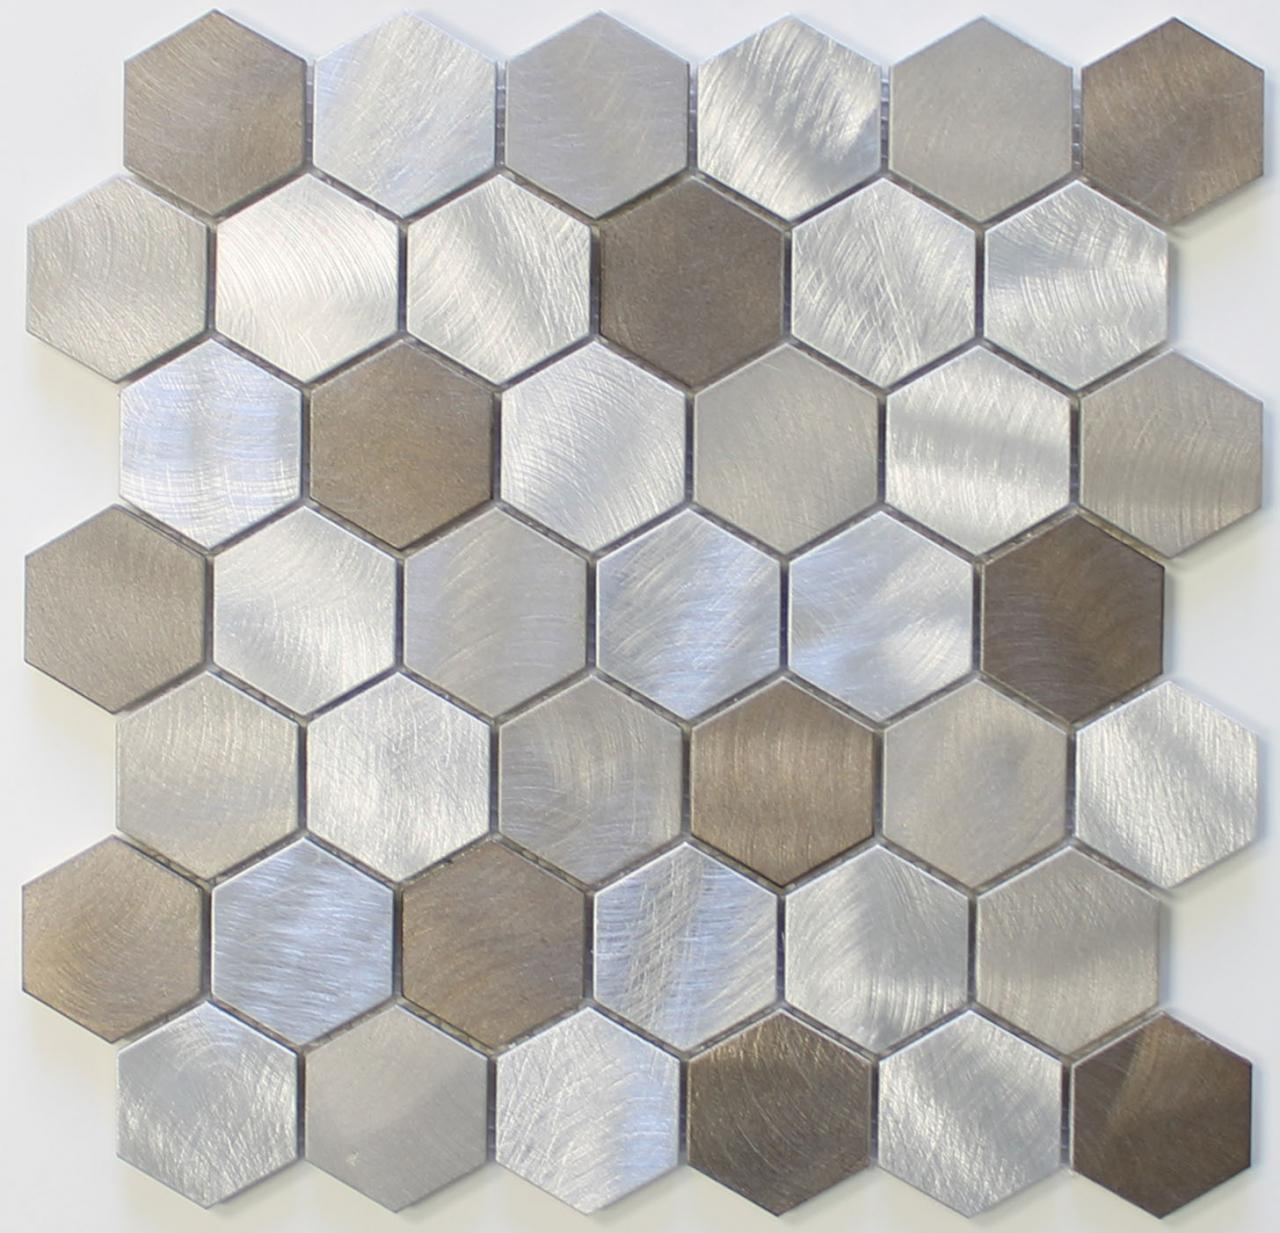 Delicieux Details About New Amsterdam Brushed Aluminum 2 Inch Hexagon Mosaic Tiles    Kitchen Backsplash